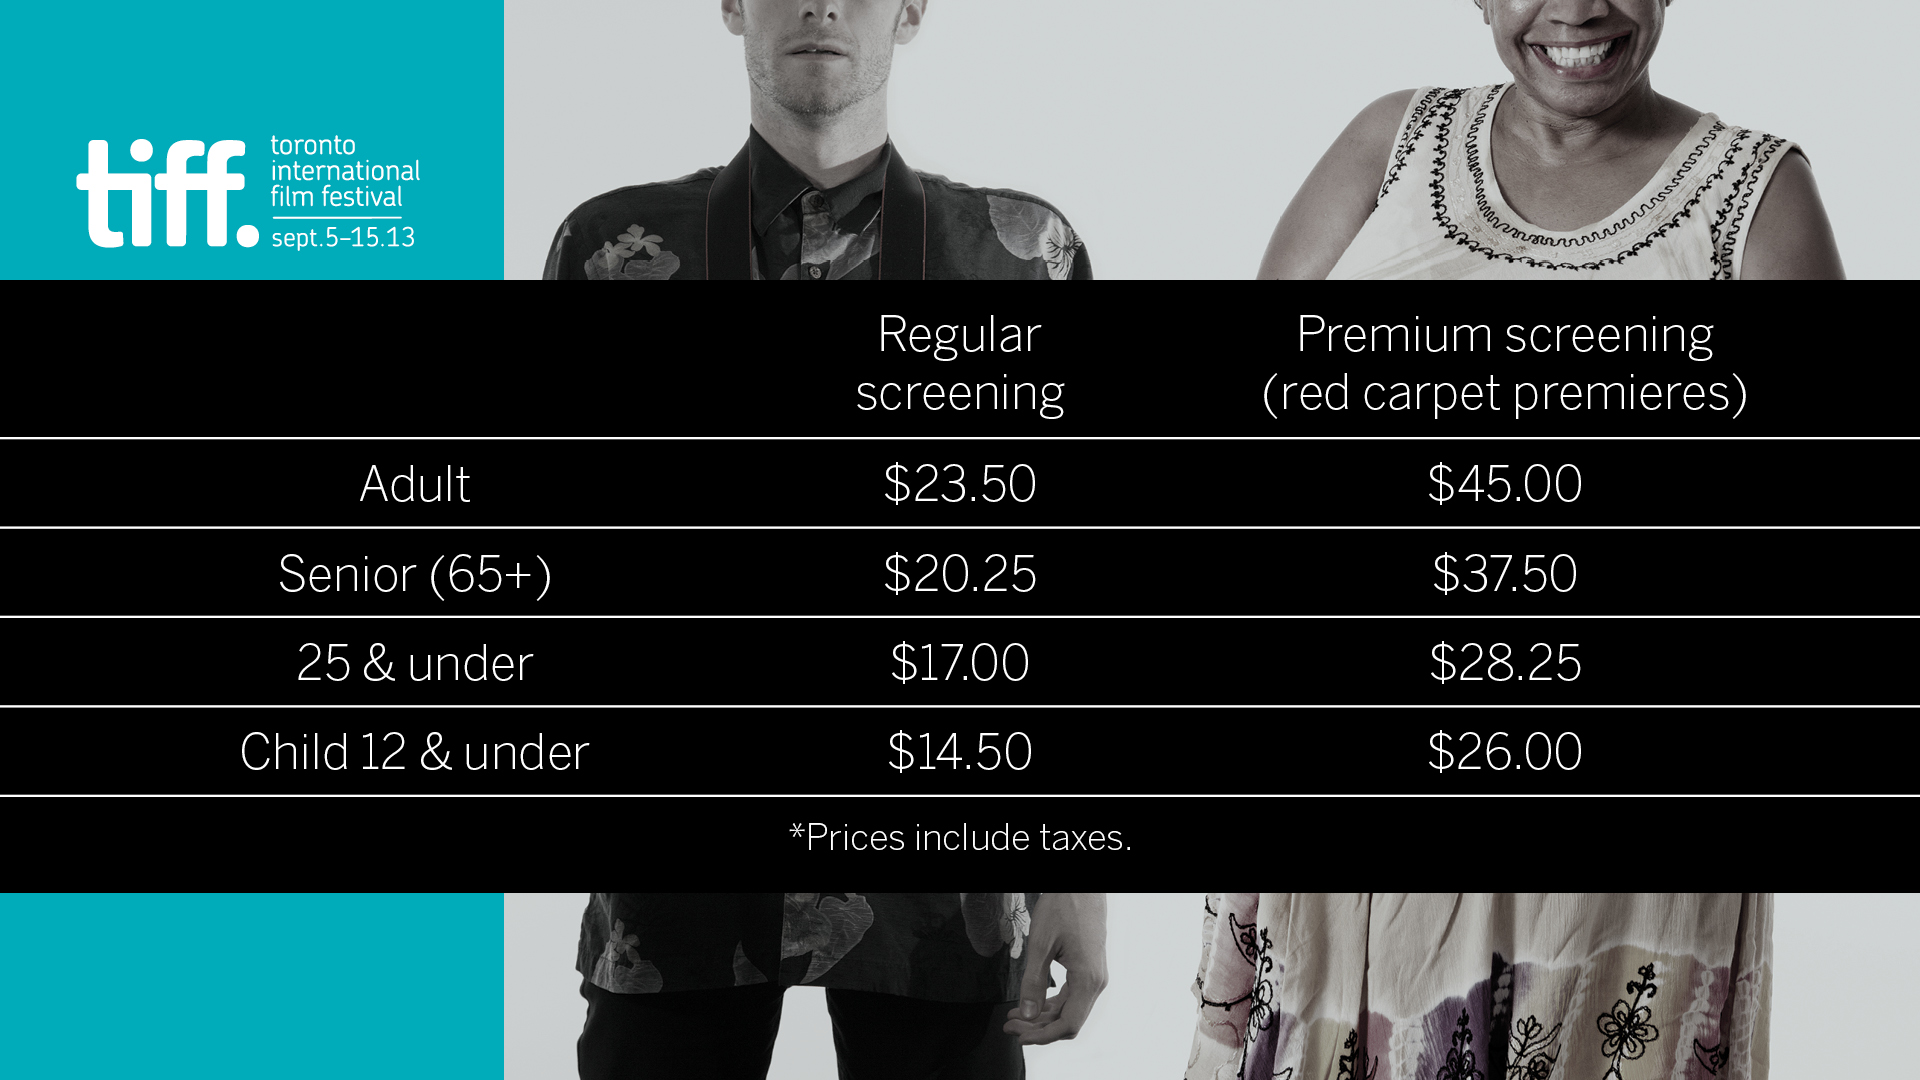 festival-pricing-screen-3C